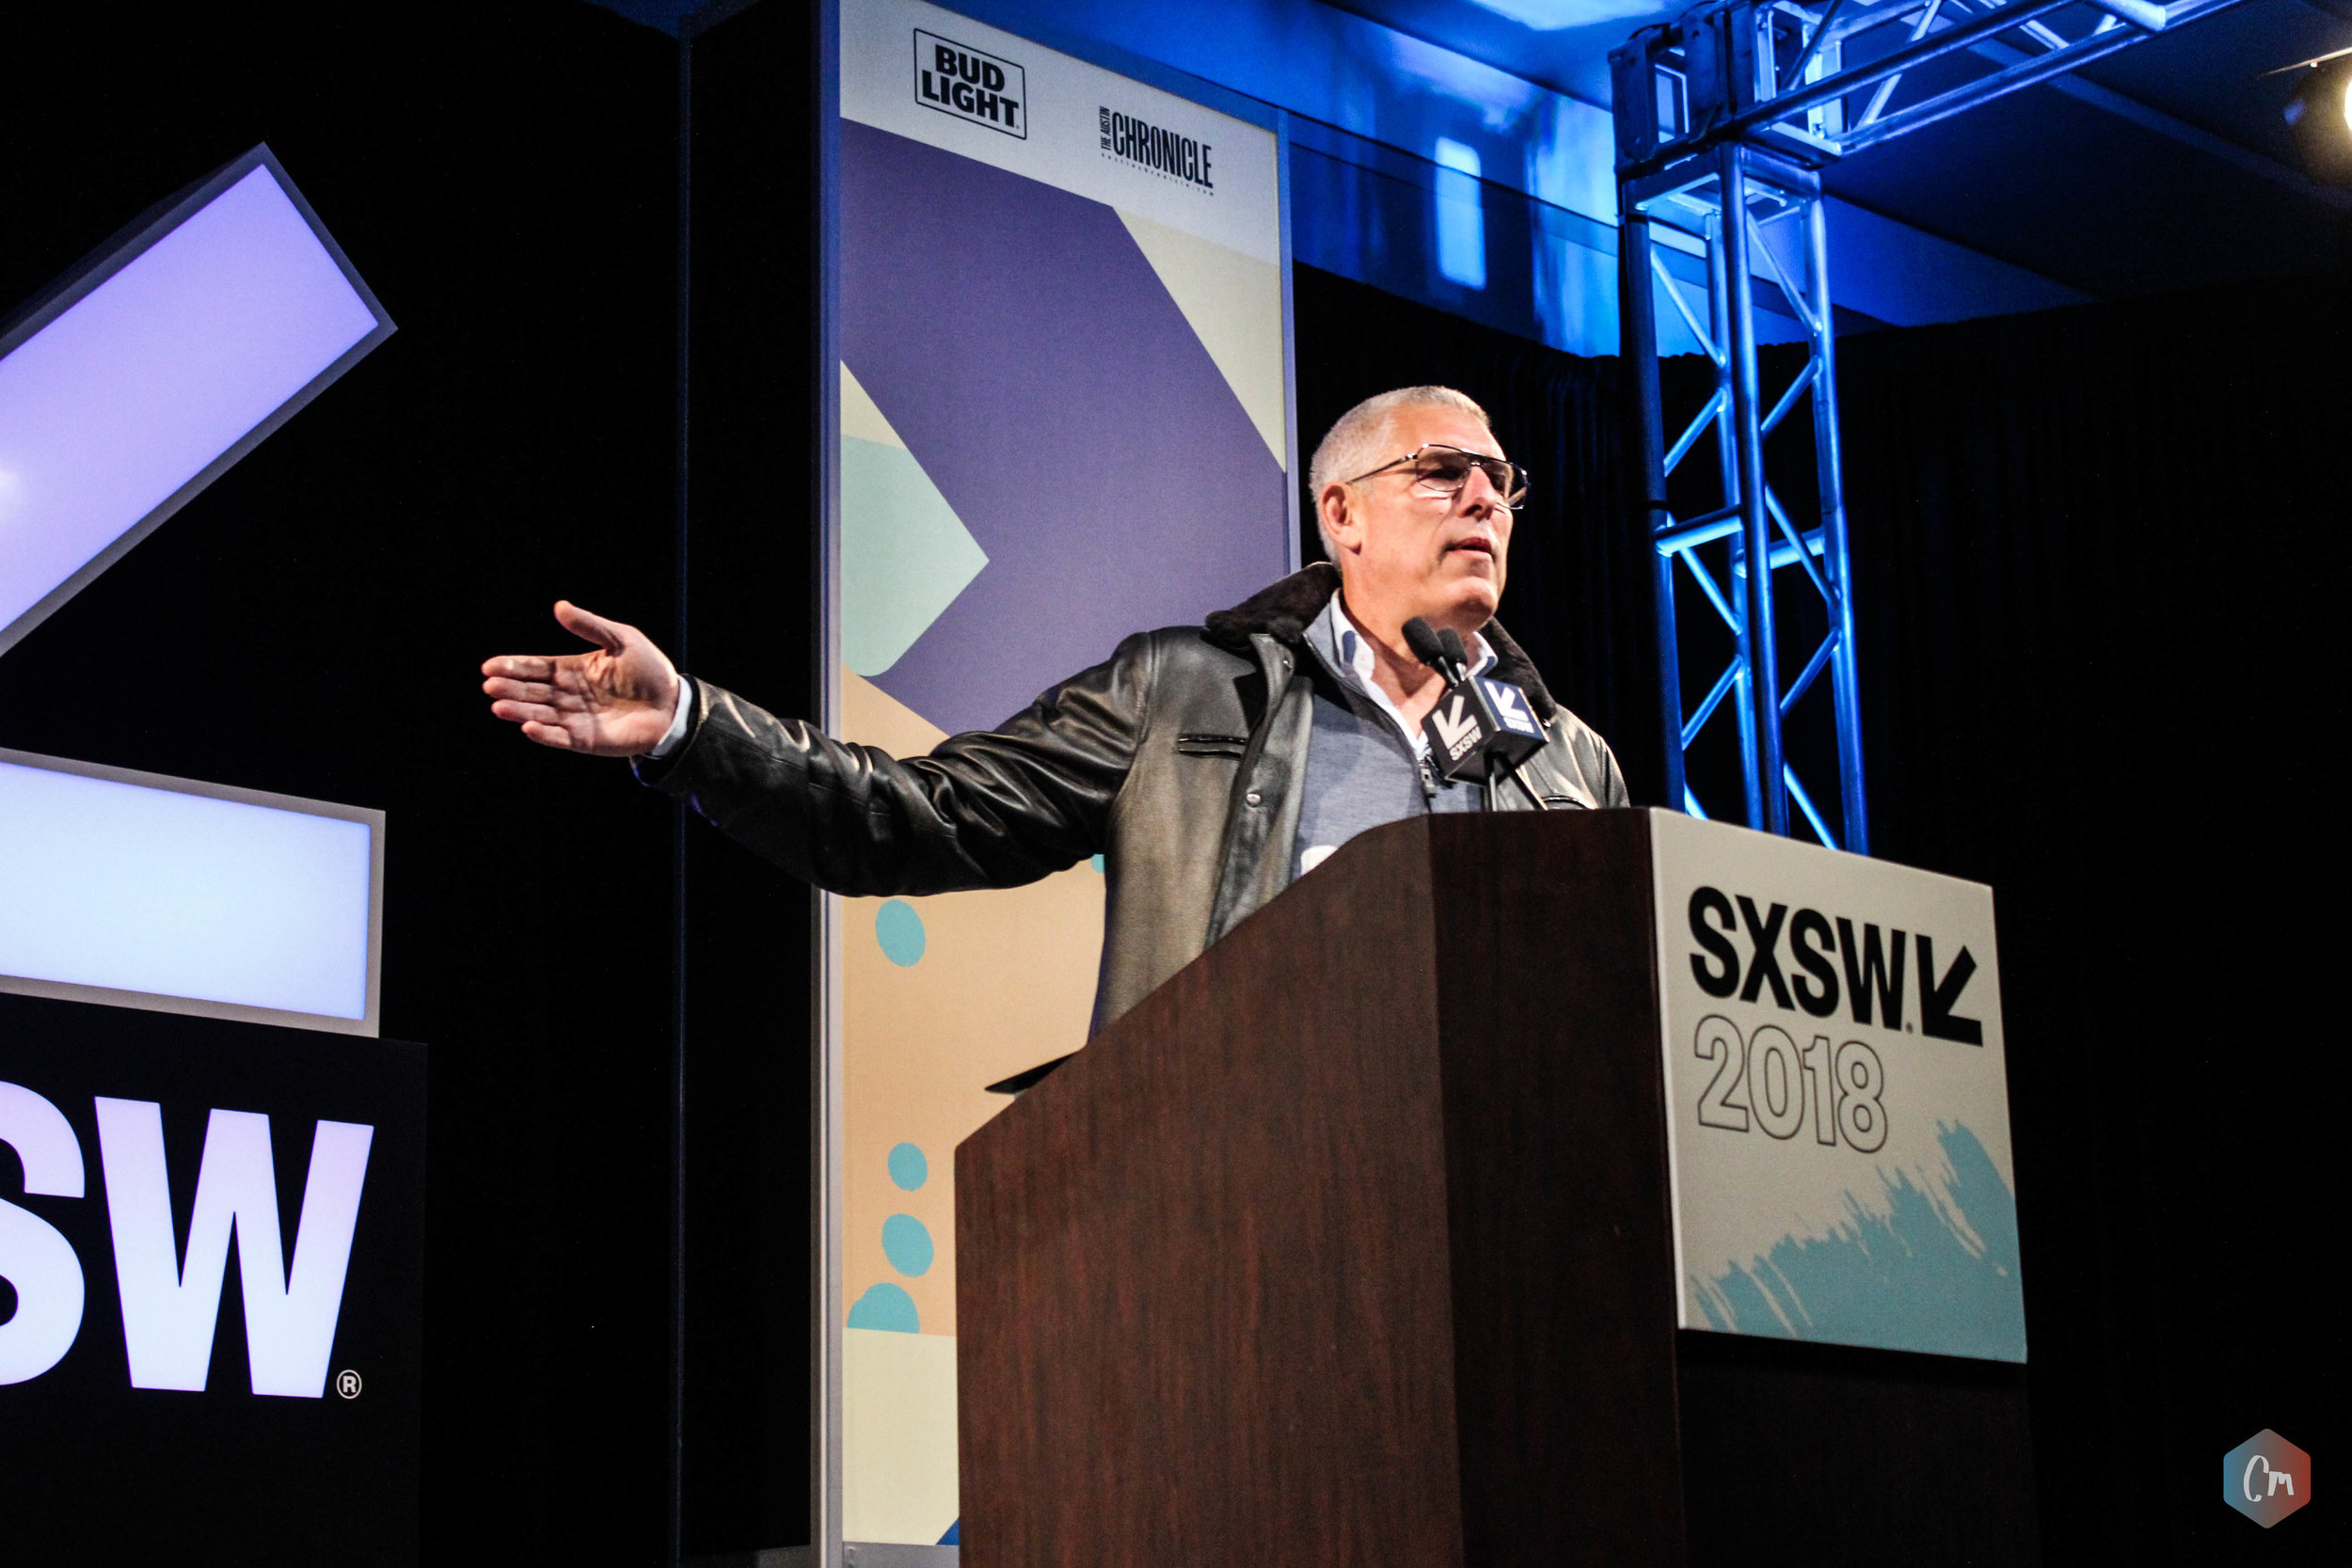 Lyor Cohen at SXSW - Photo © Concentus Music - Reproduction without permission not permitted